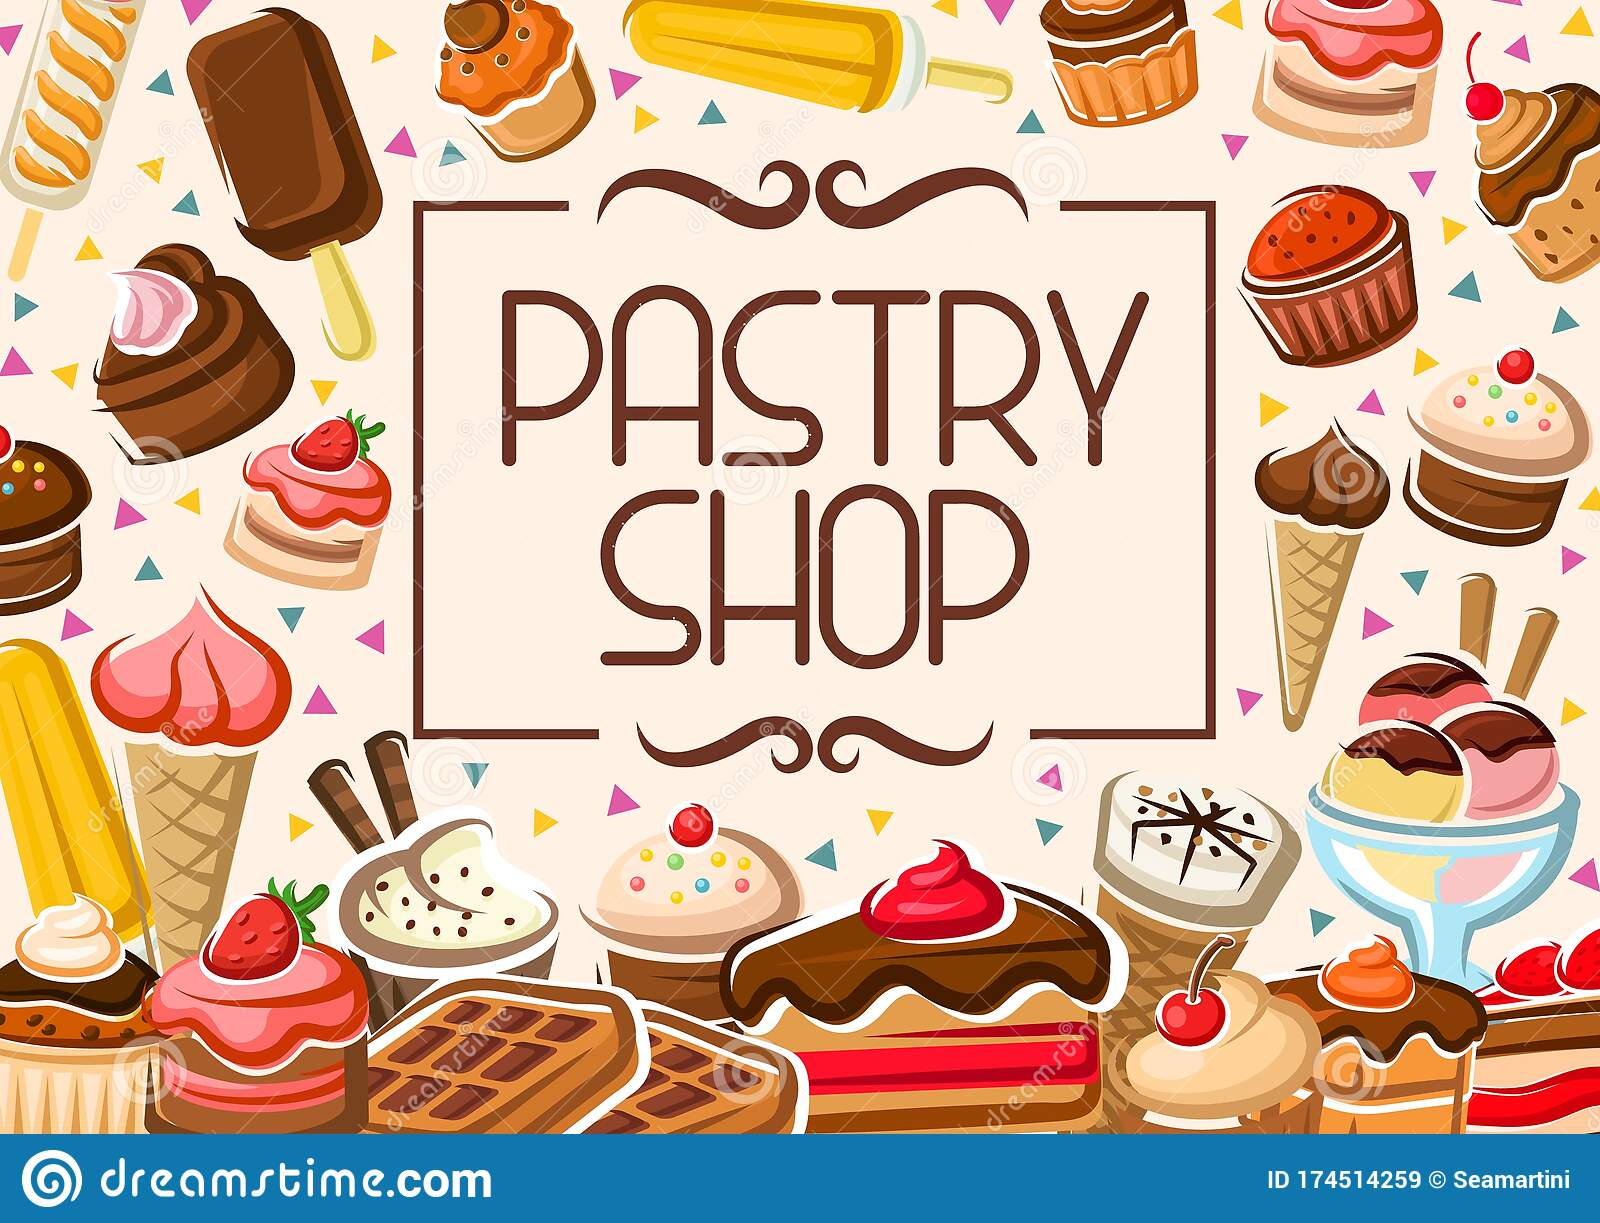 Pastry Patisserie Stock Illustrations 2 471 Pastry Patisserie Stock Illustrations Vectors Clipart Dreamstime